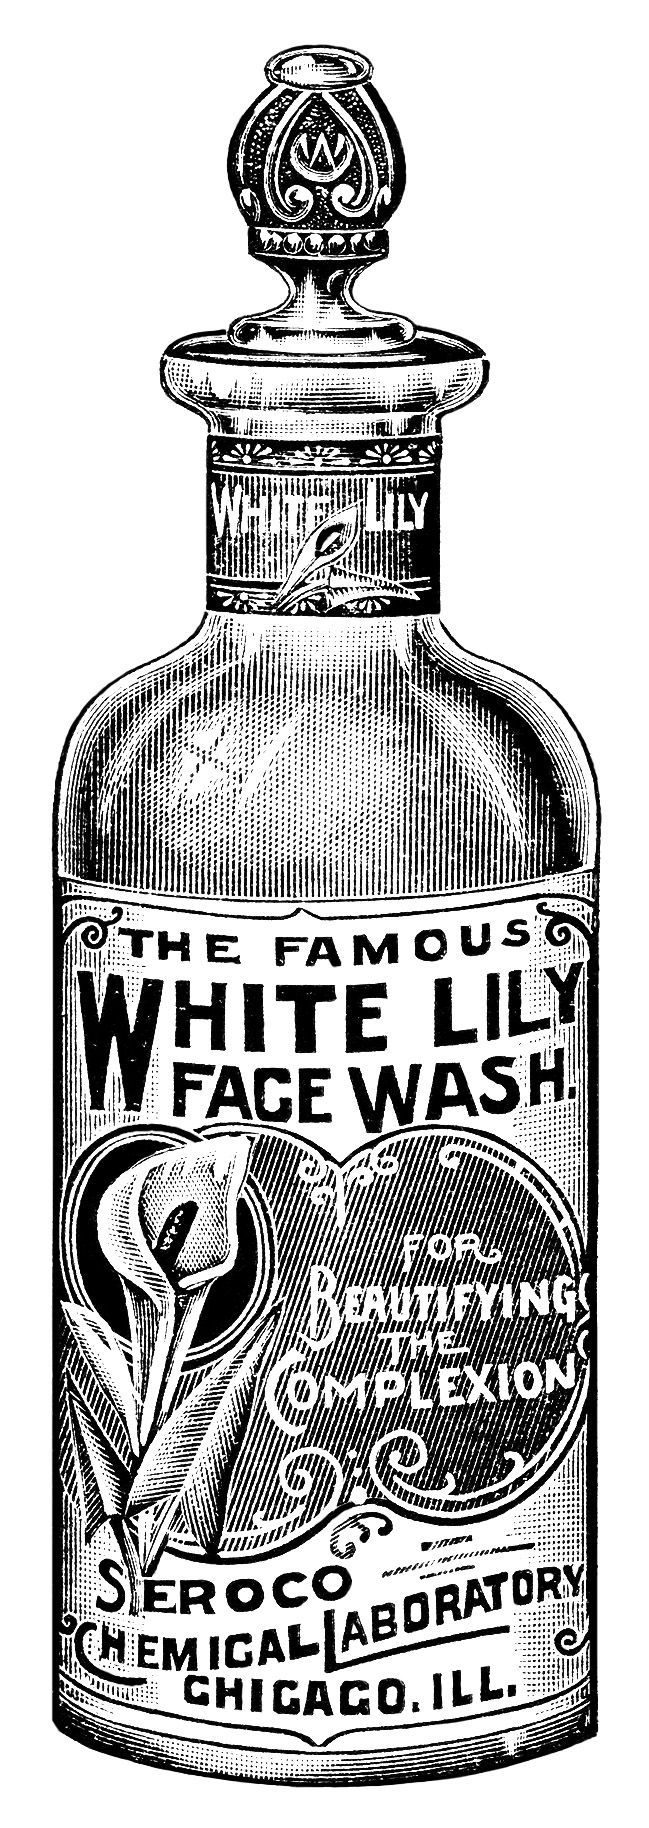 Vintage labels pinterest. Beauty clipart black and white